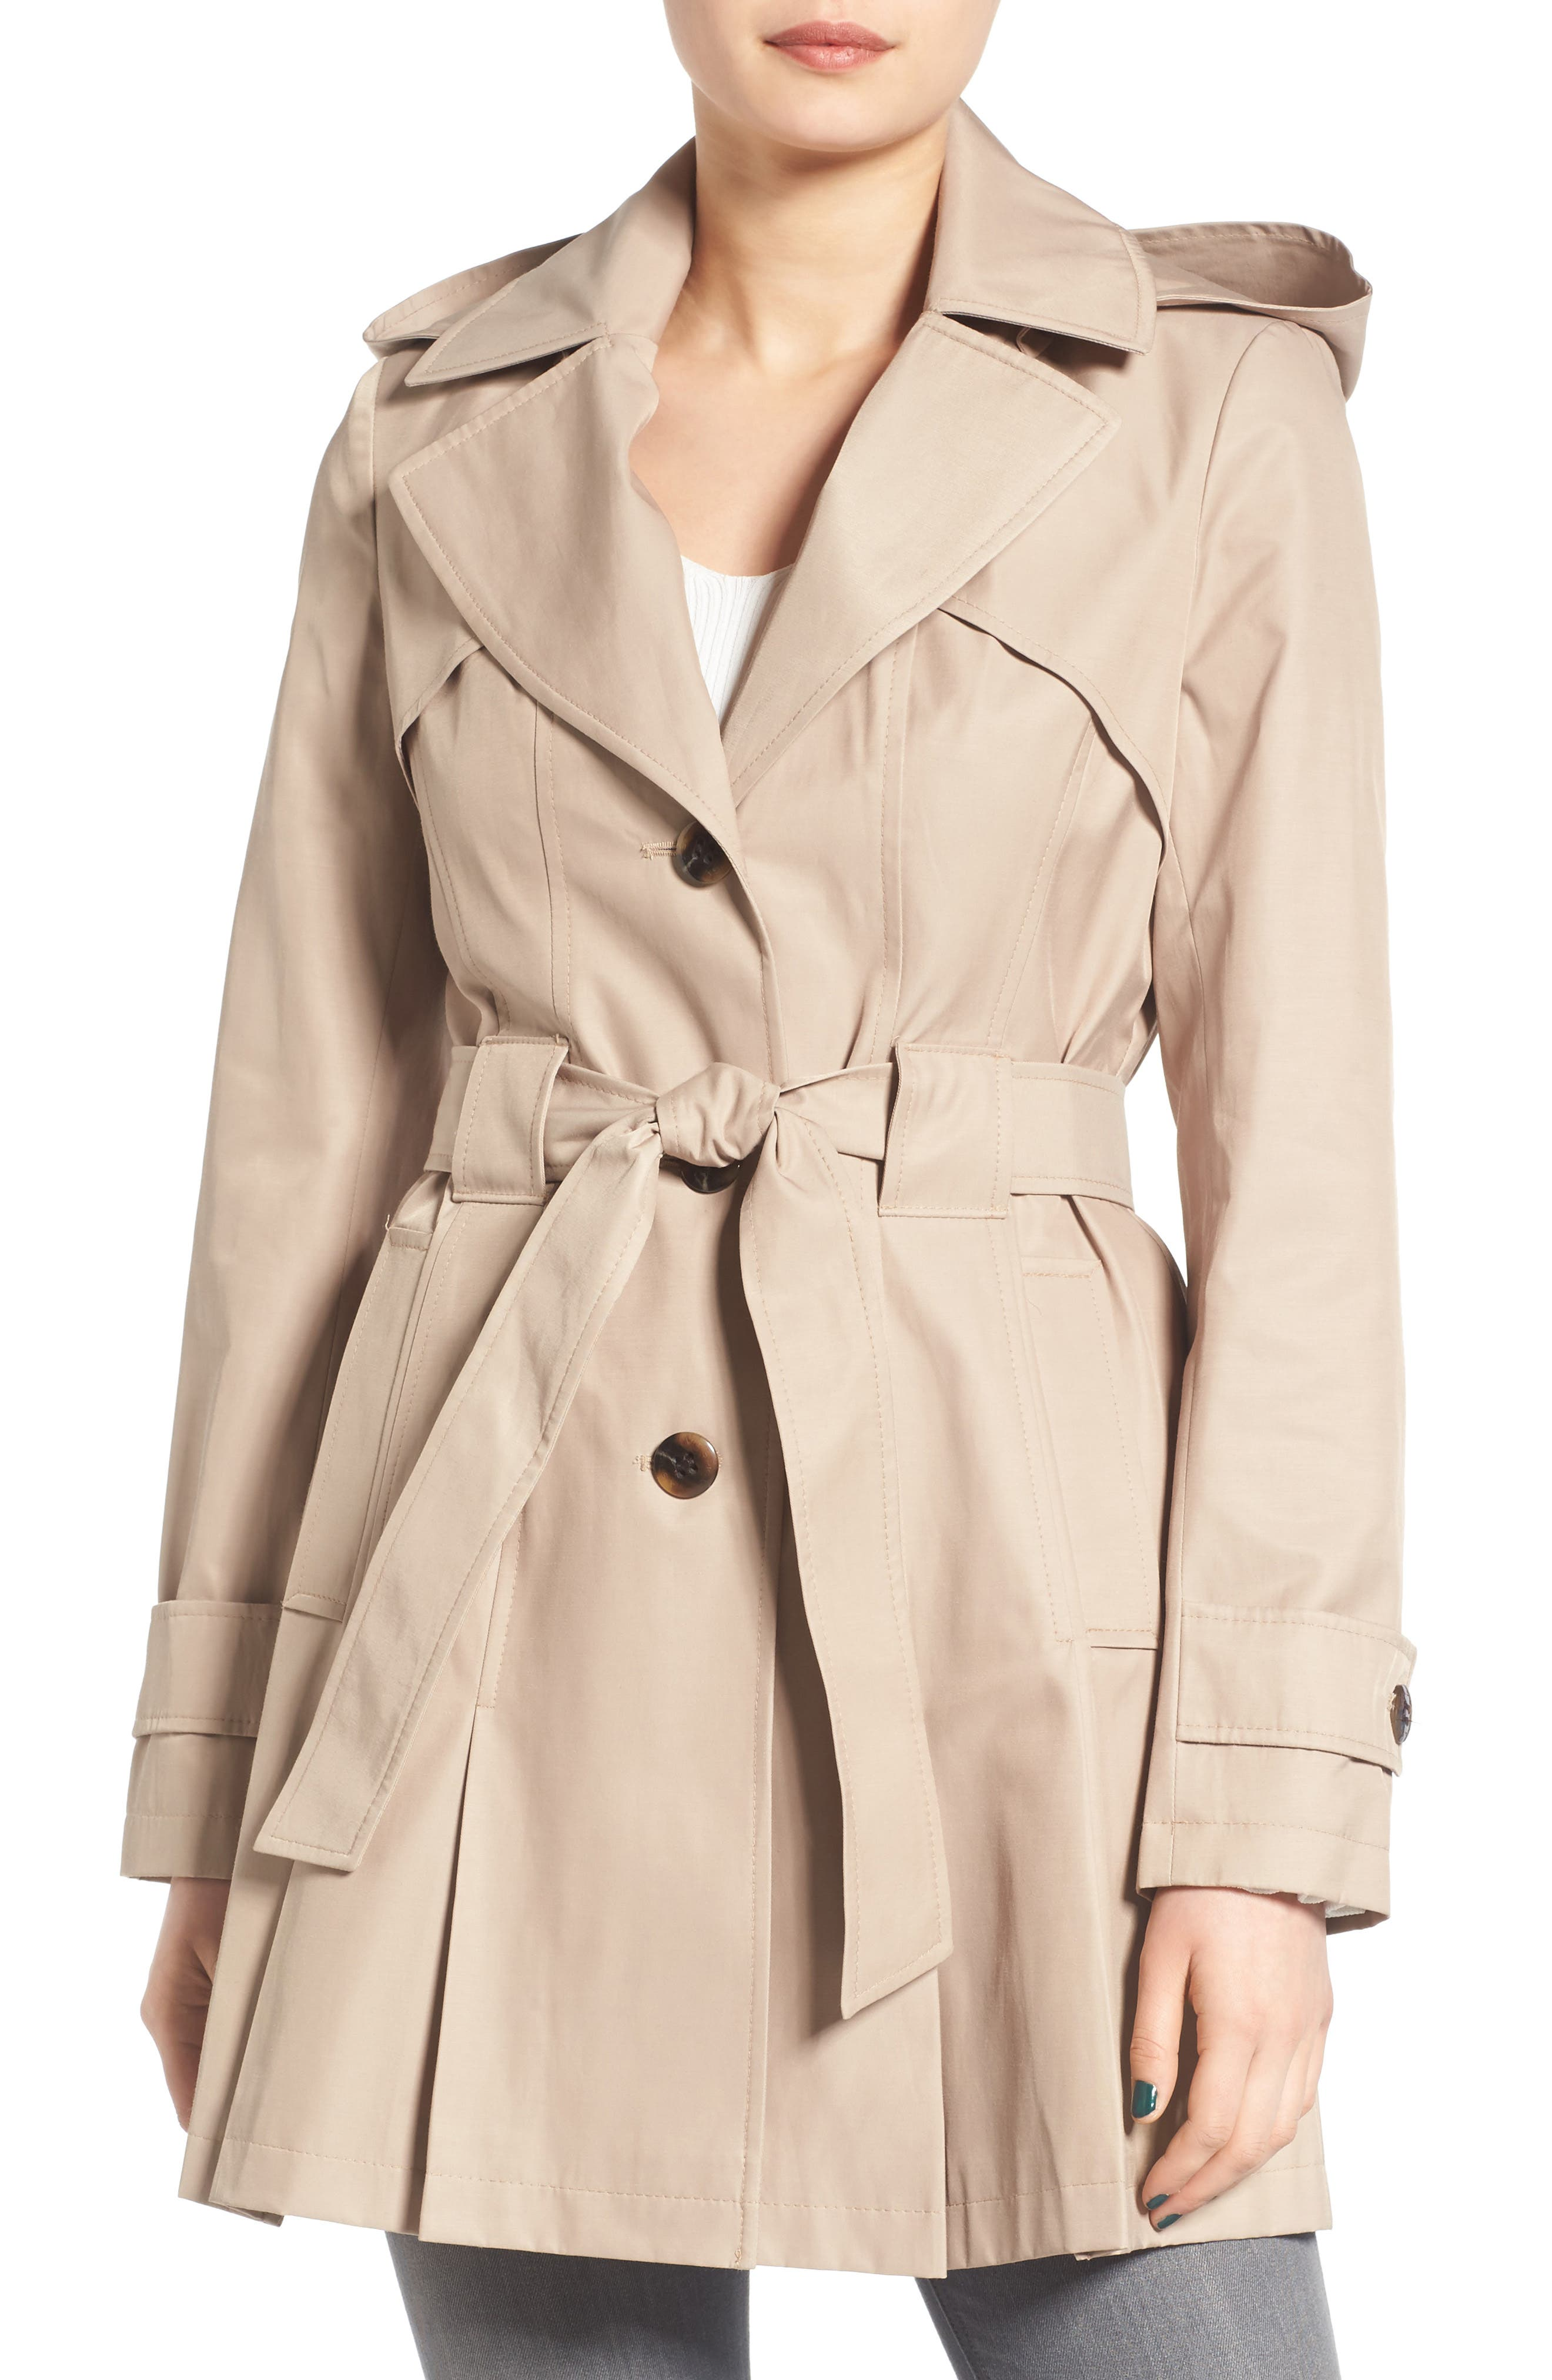 'Scarpa' Hooded Single Breasted Trench Coat,                         Main,                         color, Sand